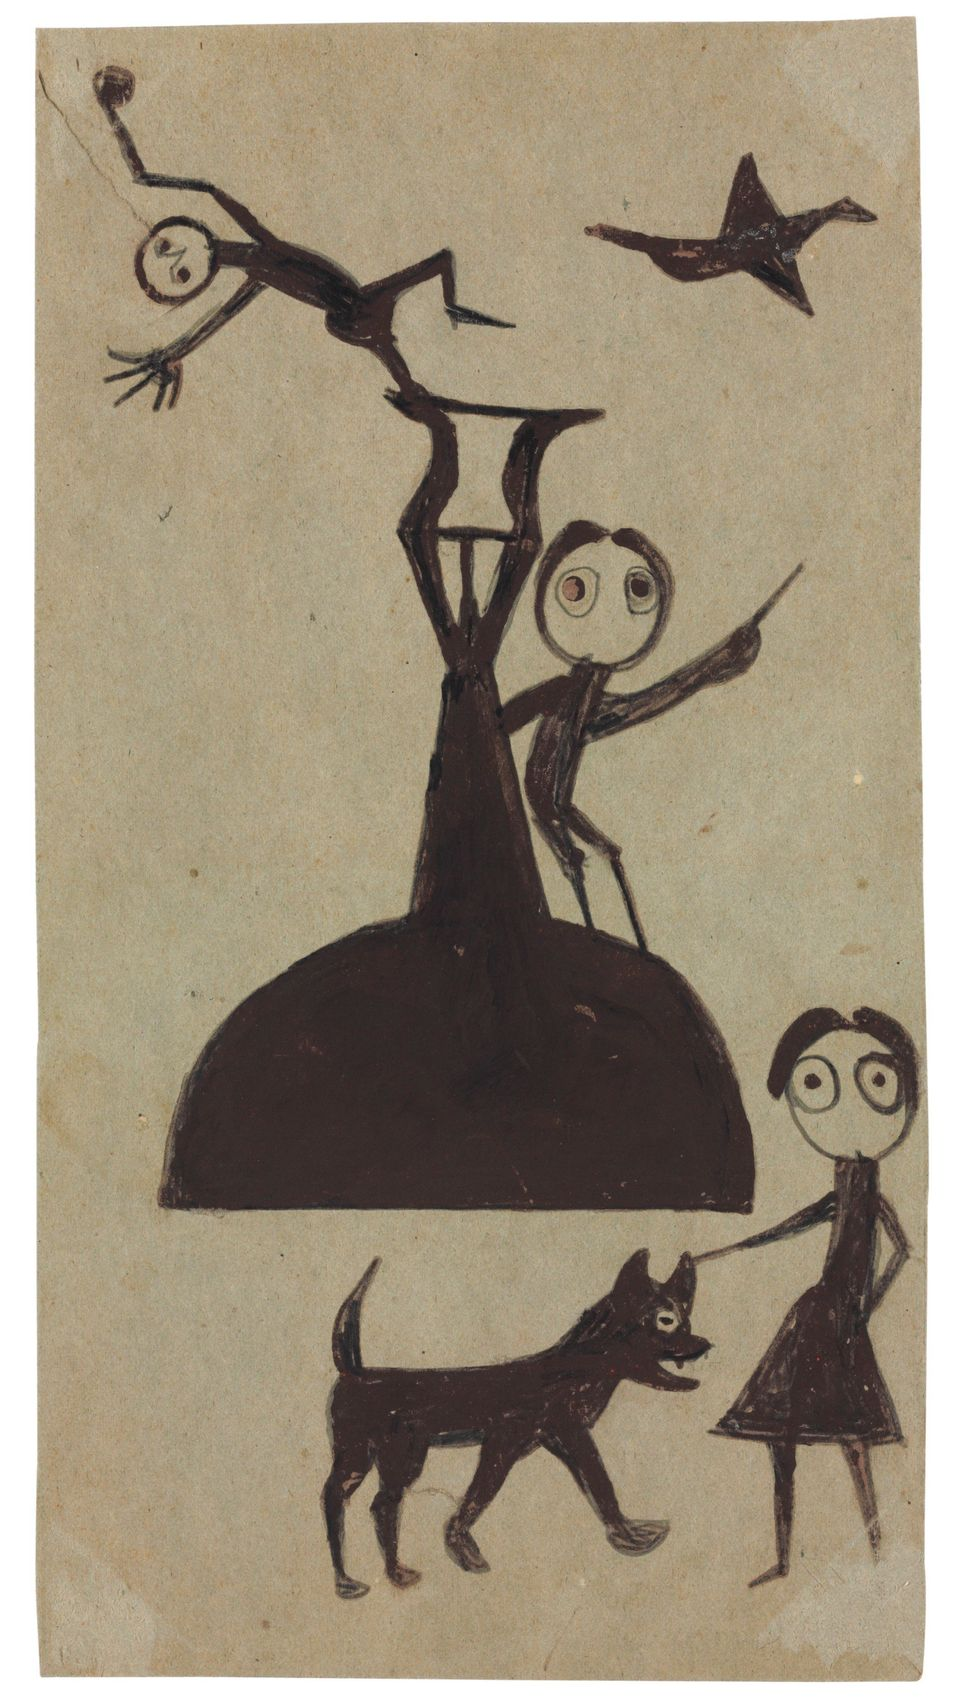 After a lifetime on a plantation, former slave Bill Traylor moved to Montgomery, Alabama. Crippled with rheumatism, he began